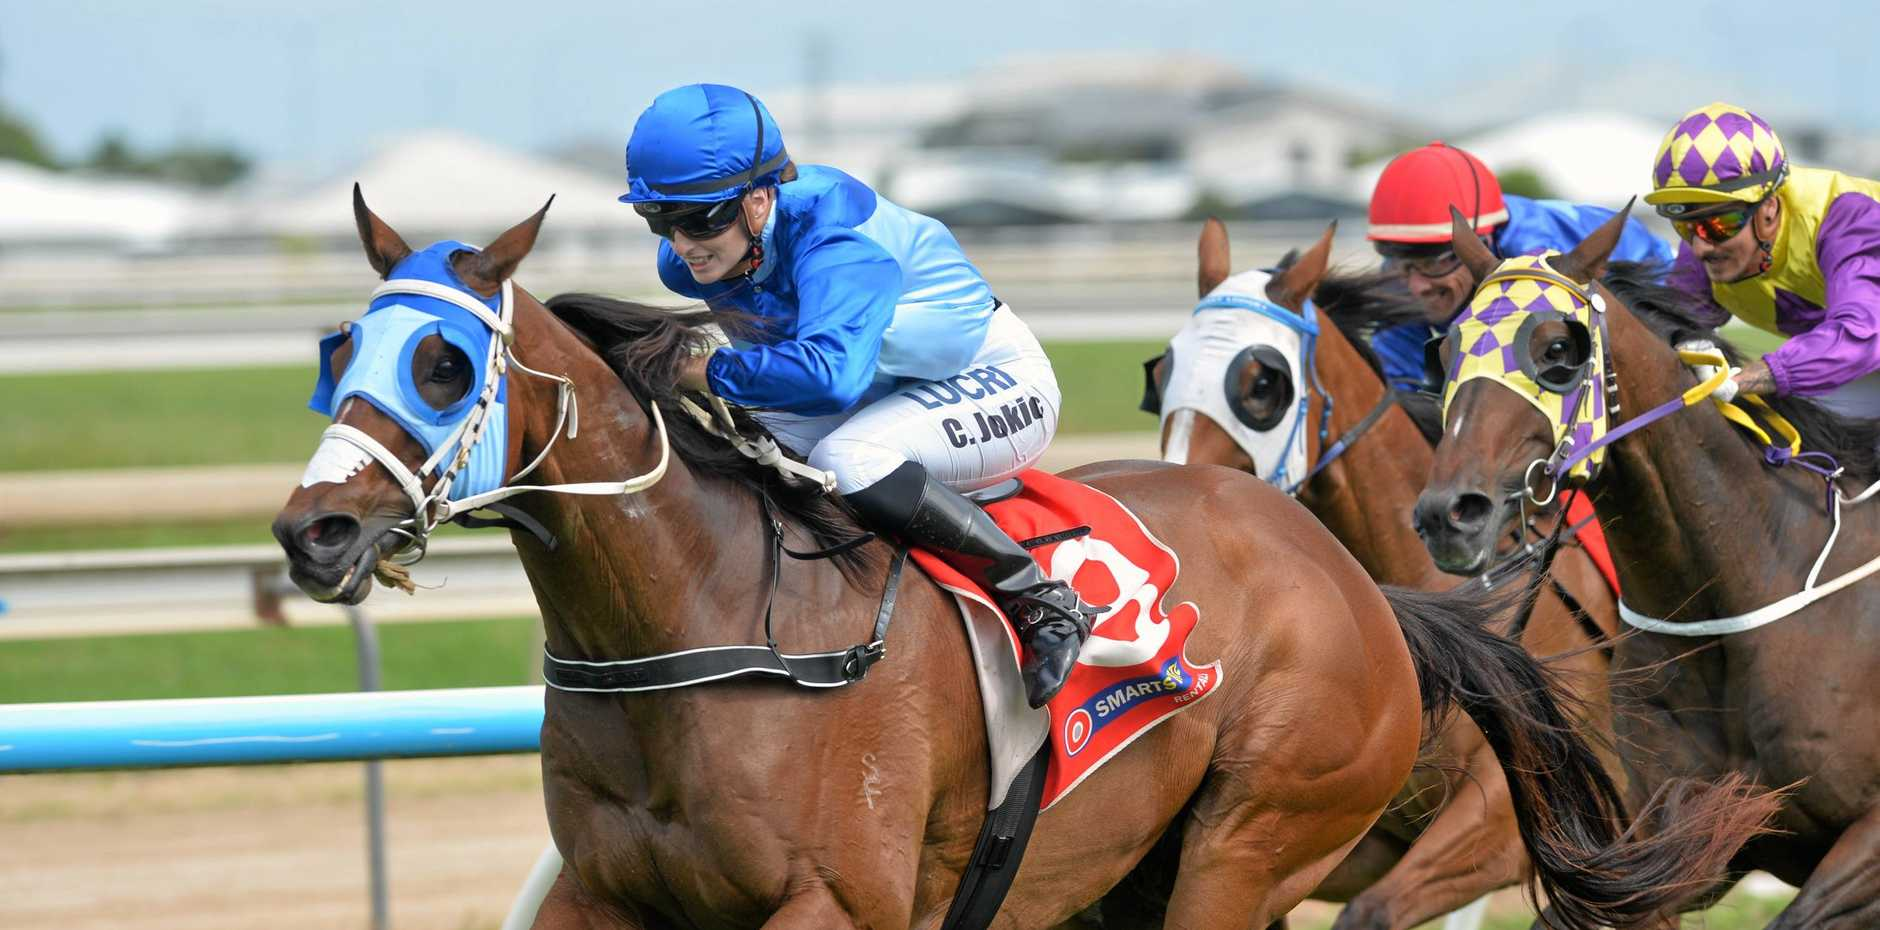 Chelsea Jokic took Winsomemore (8) to his sixth career win in the Race 5 1560m BM65 Handicap event at the Mackay Turf Club Long Lunch Race Meeting.